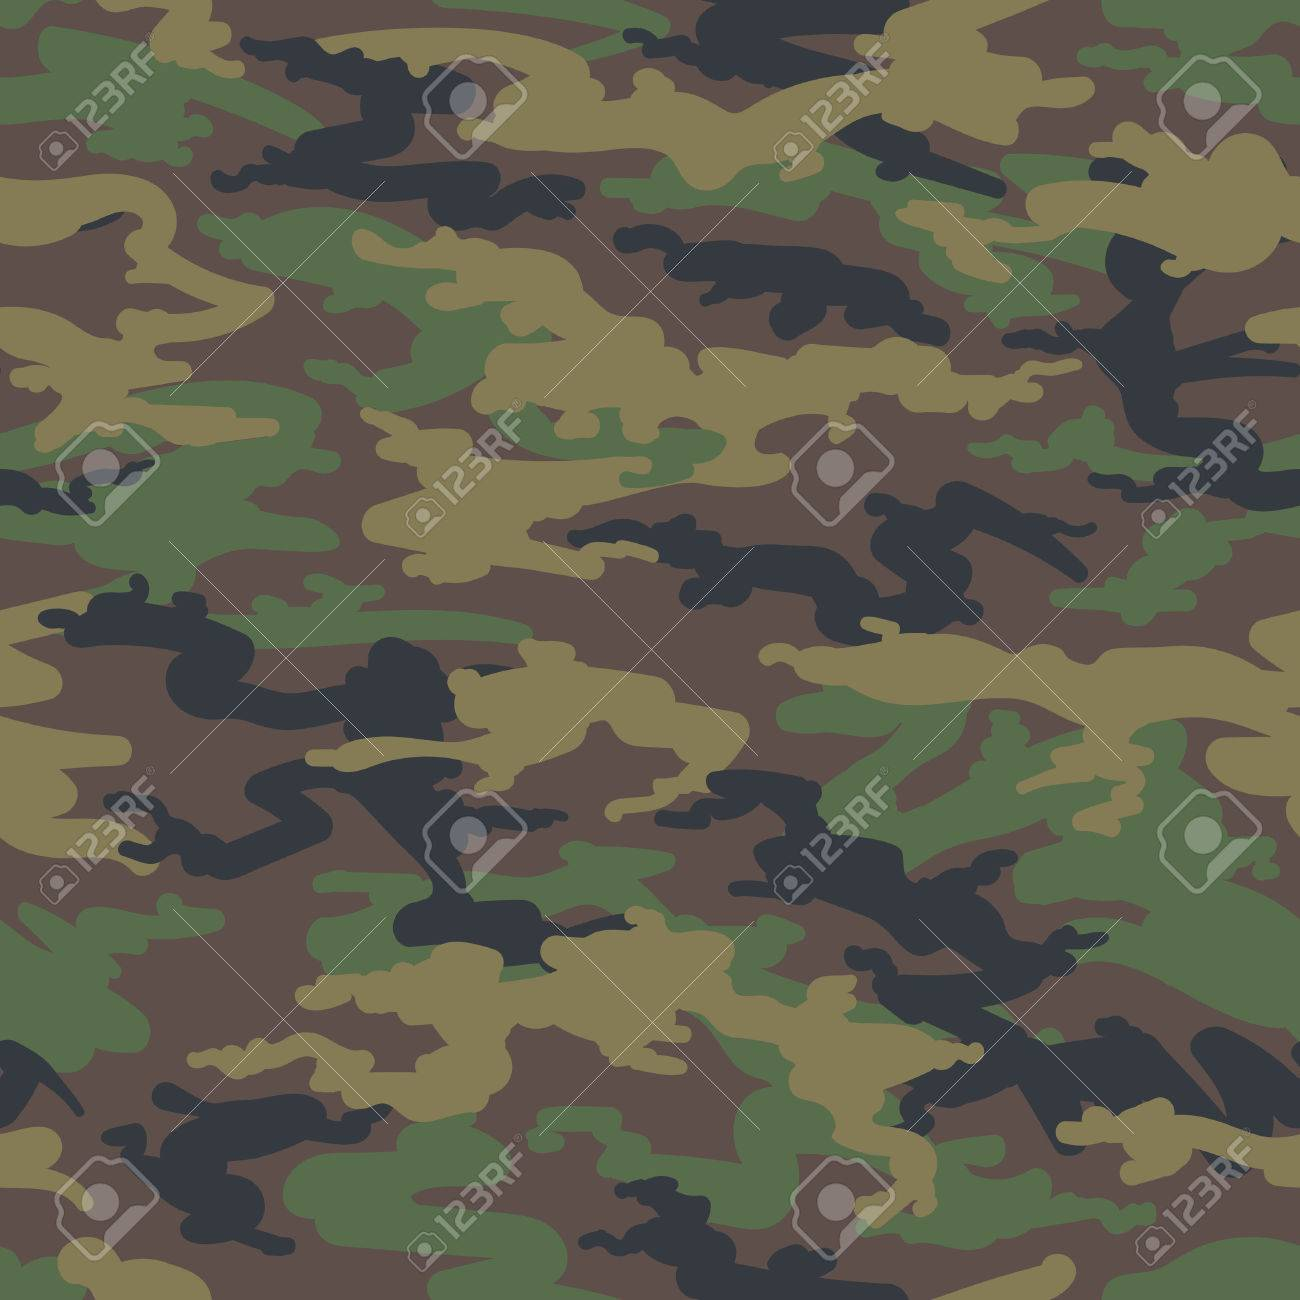 Military Army Camo Background Vector Woodland Hunting Camoflauge 1300x1300